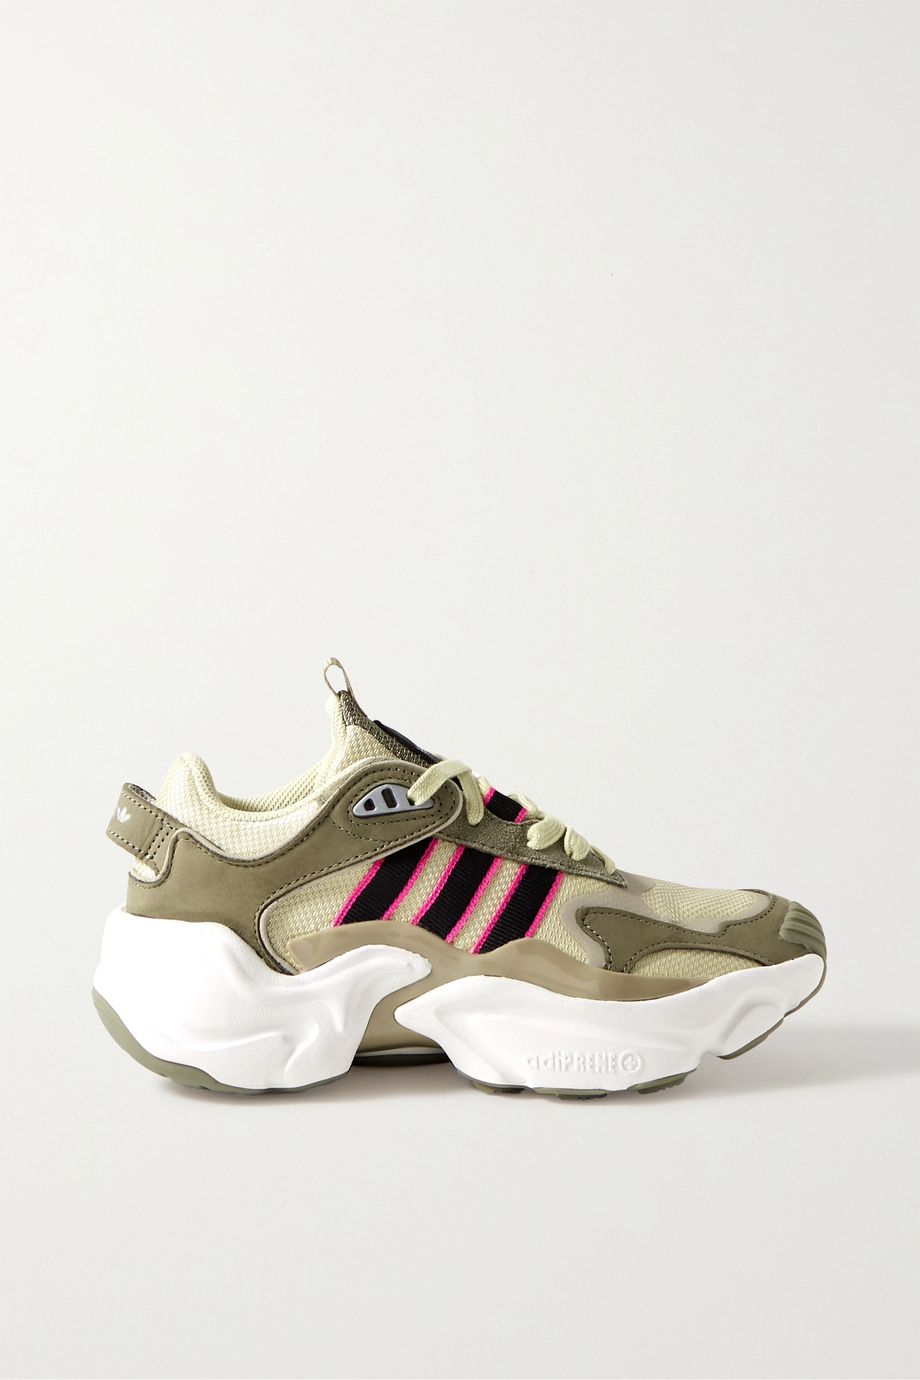 adidas Originals Magmur suede-trimmed leather and mesh sneakers